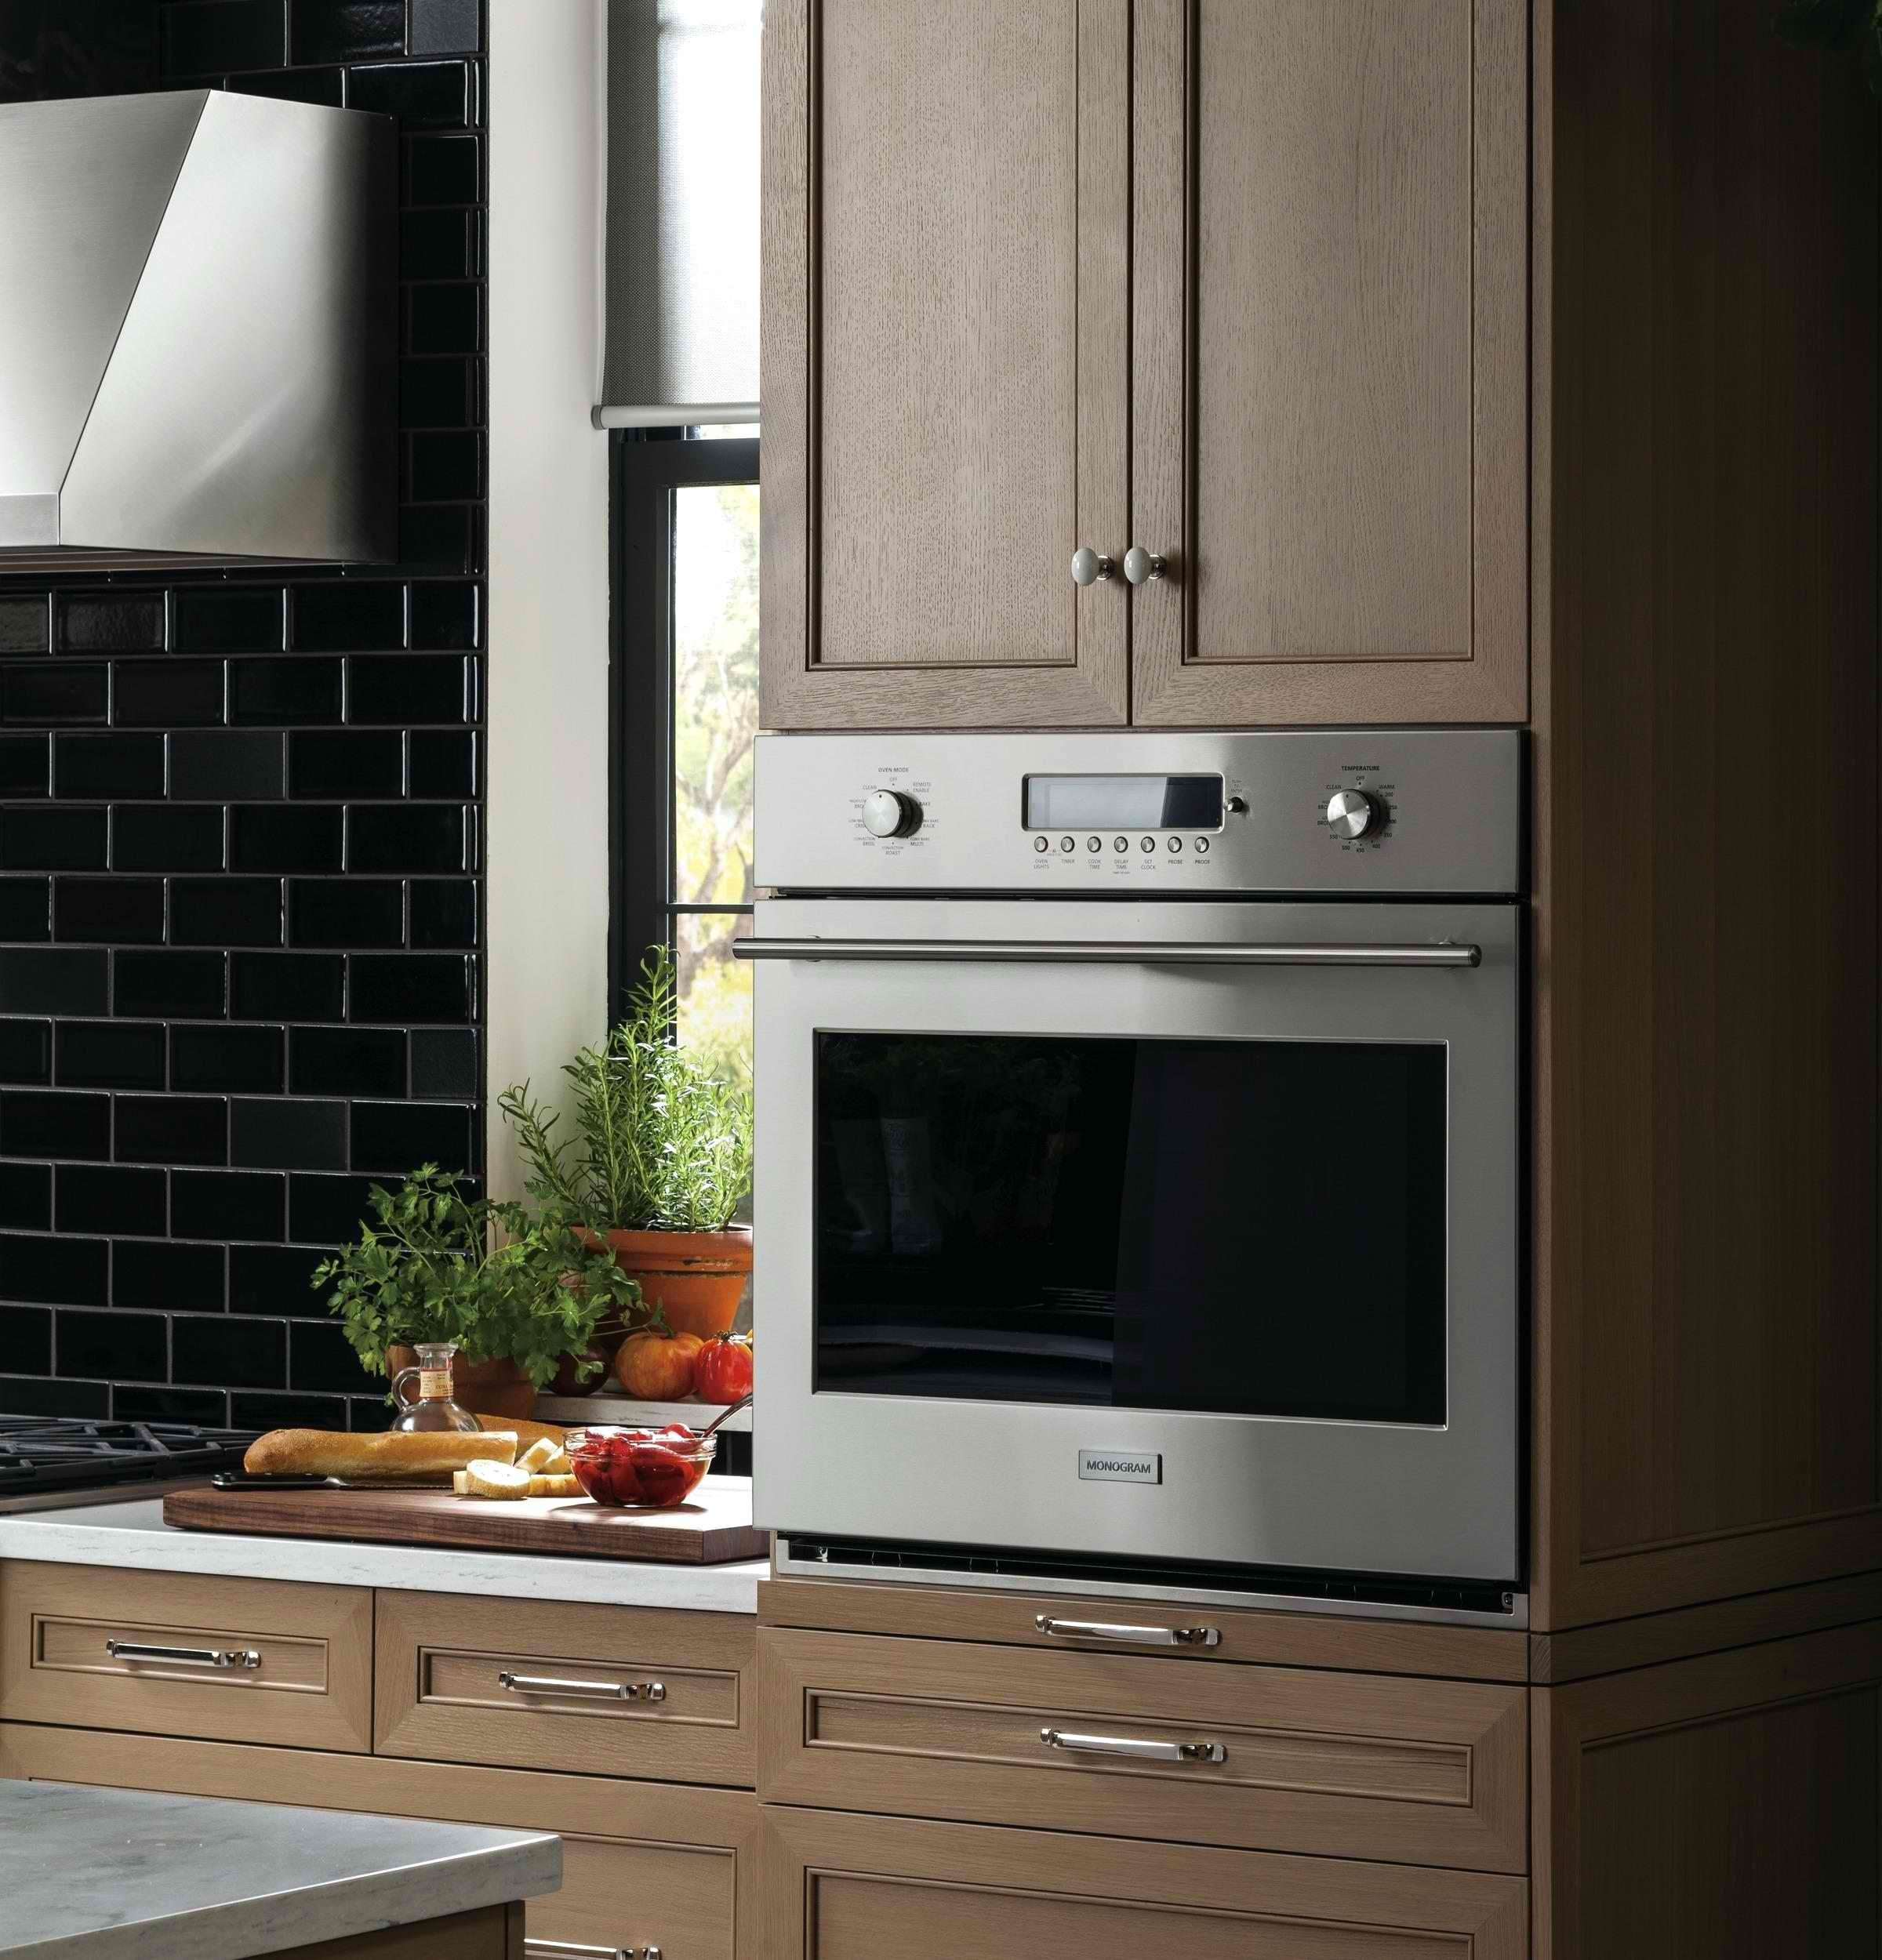 Ge Monogram Wall Oven Review : A Wall Oven Is A Great Choice